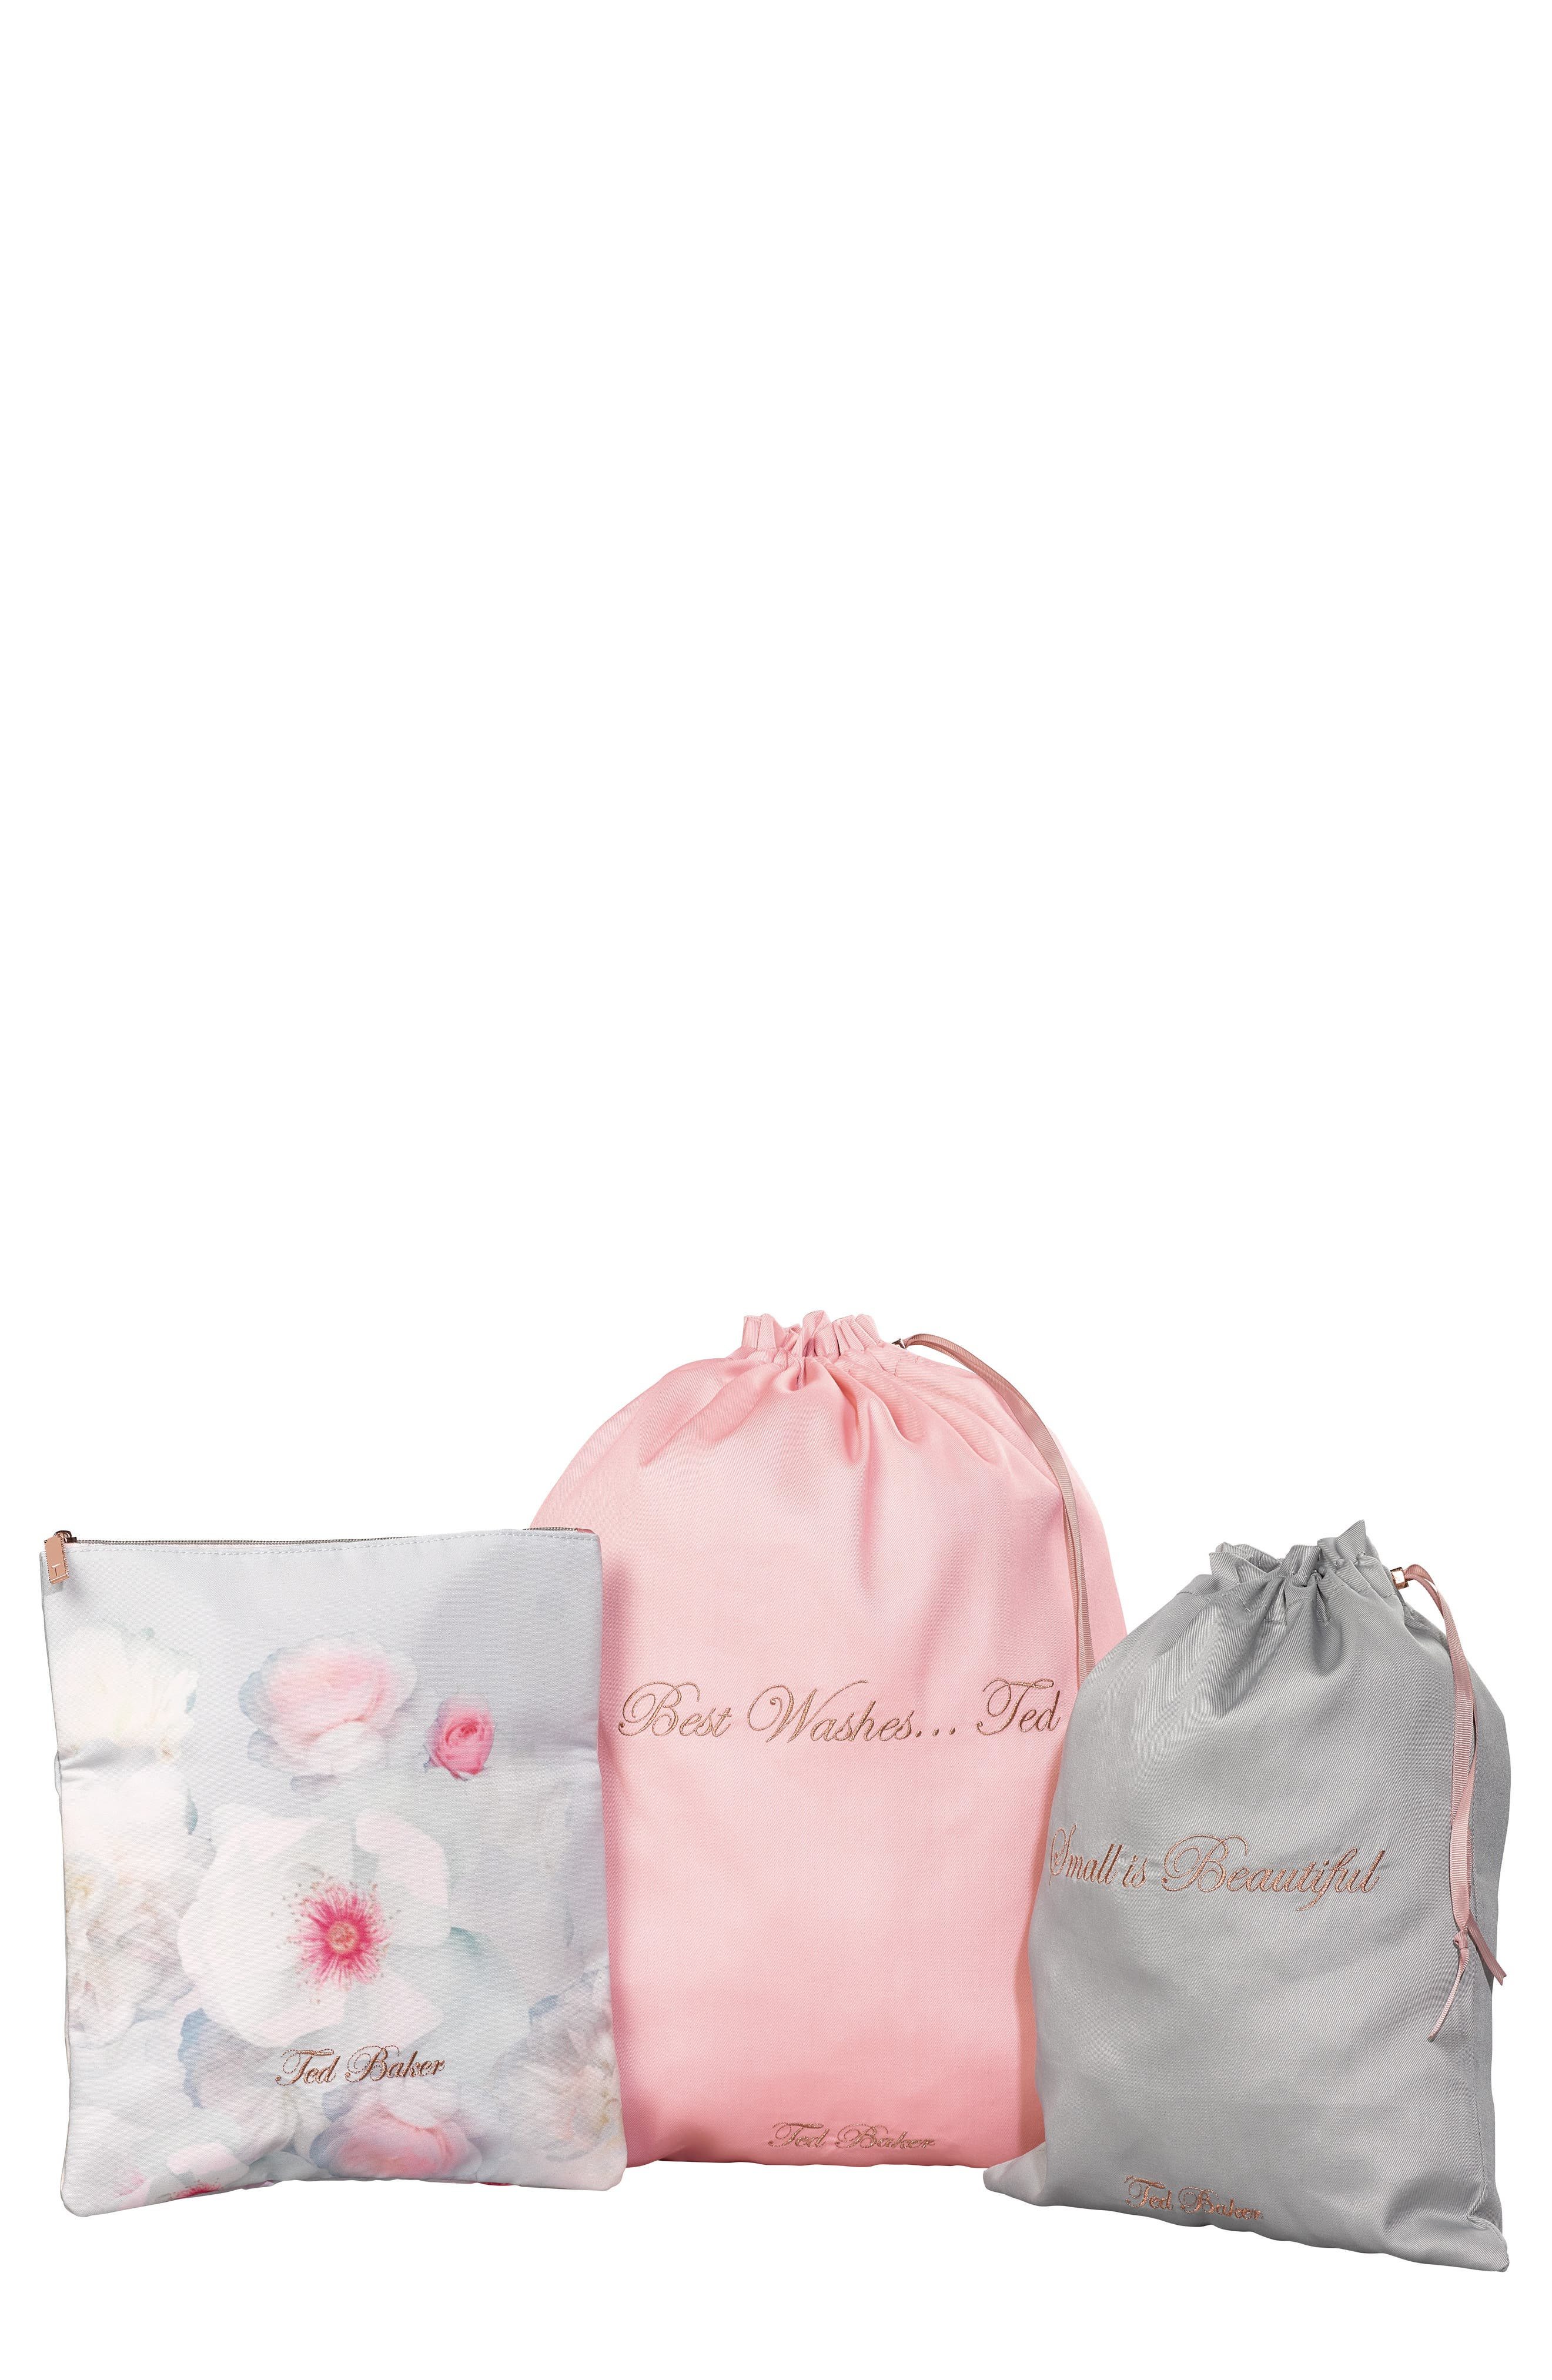 Alternate Image 1 Selected - Ted Baker London Laundry Bags & Case